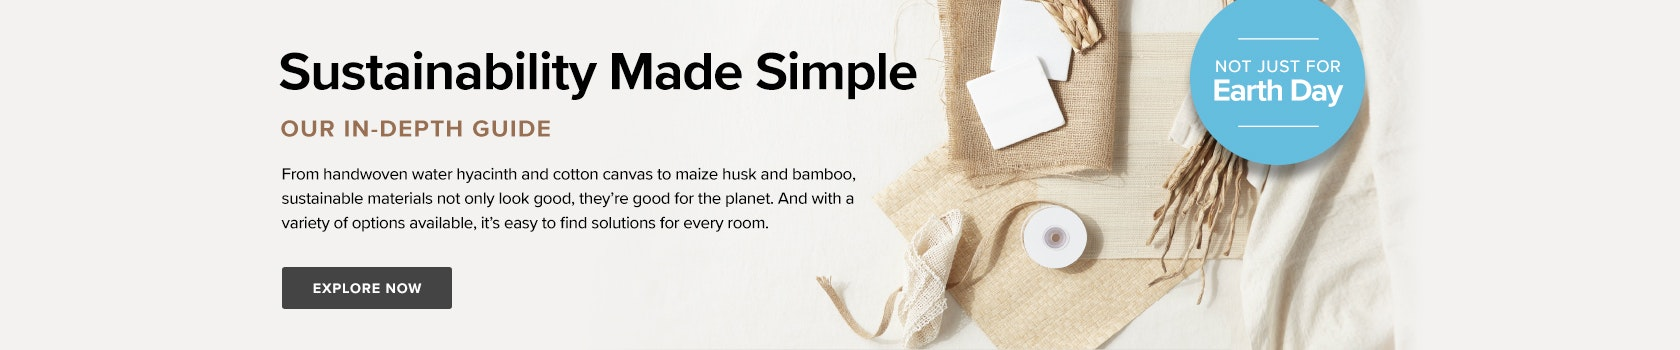 Sustainability Made Simple - Not Just Earth Day